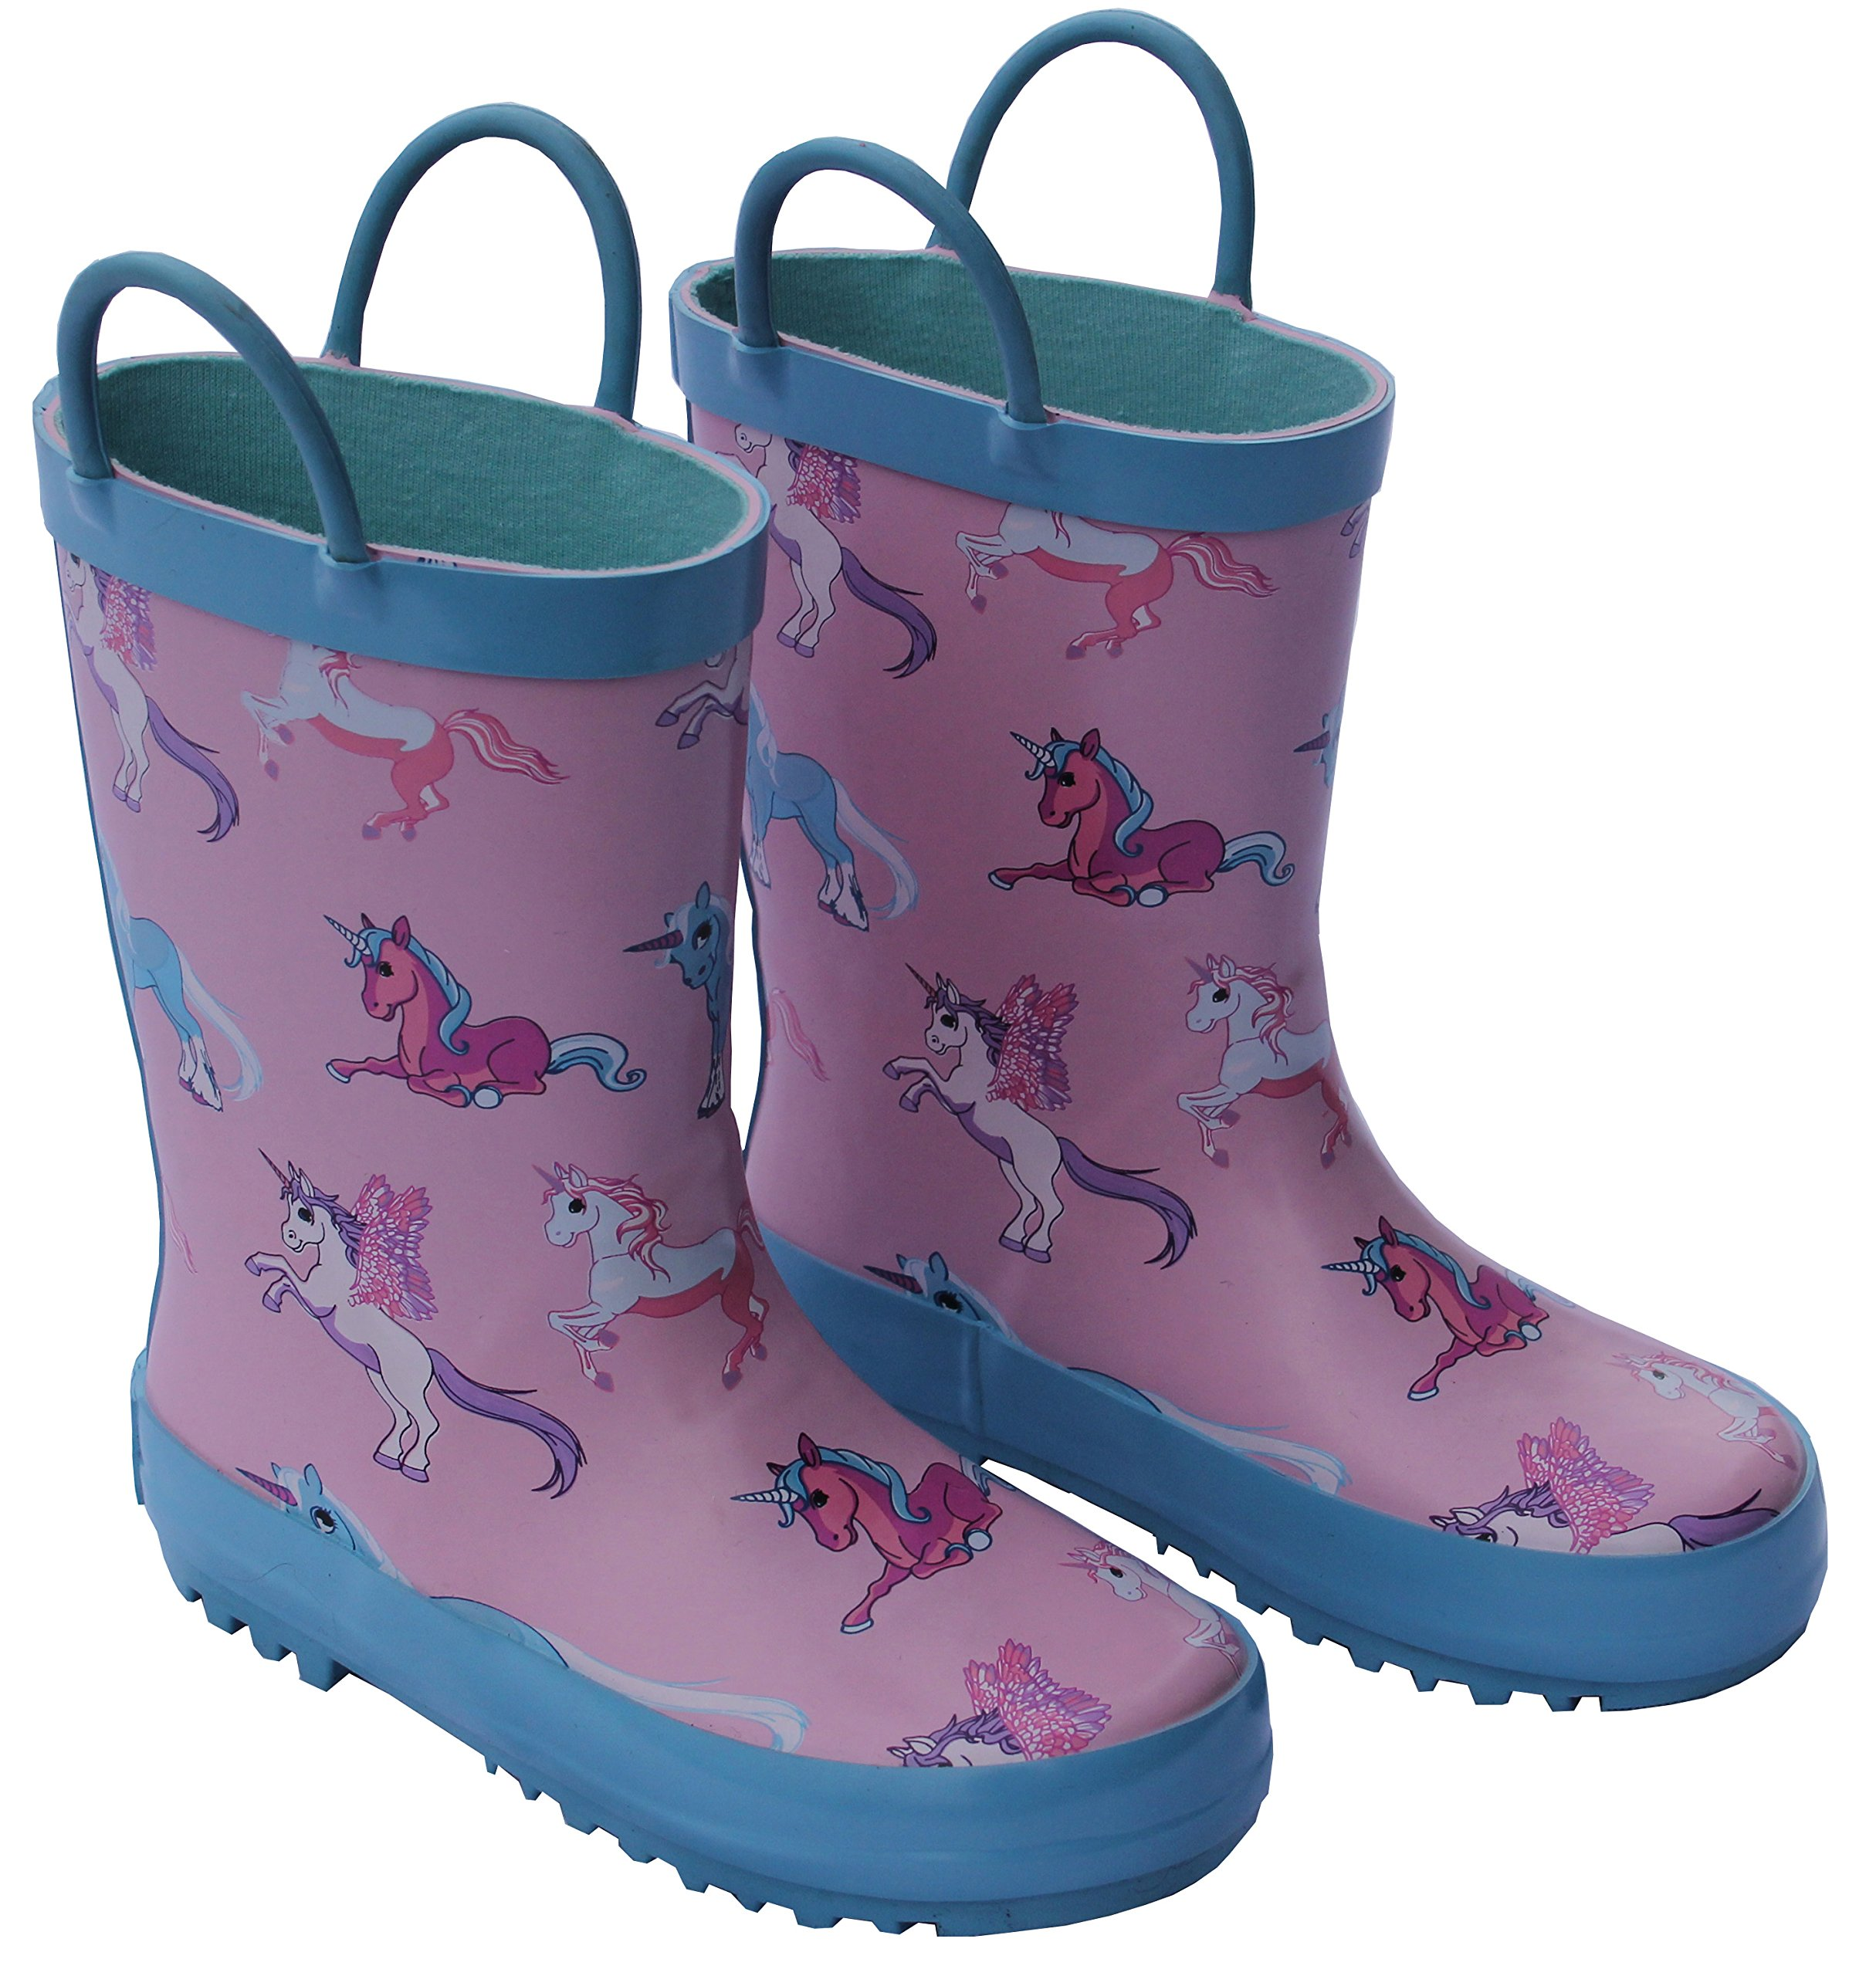 Foxfire for Kids Pink and Blue Rubber Boots with Unicorn Pattern Size 1 by Foxfire for Kids (Image #1)